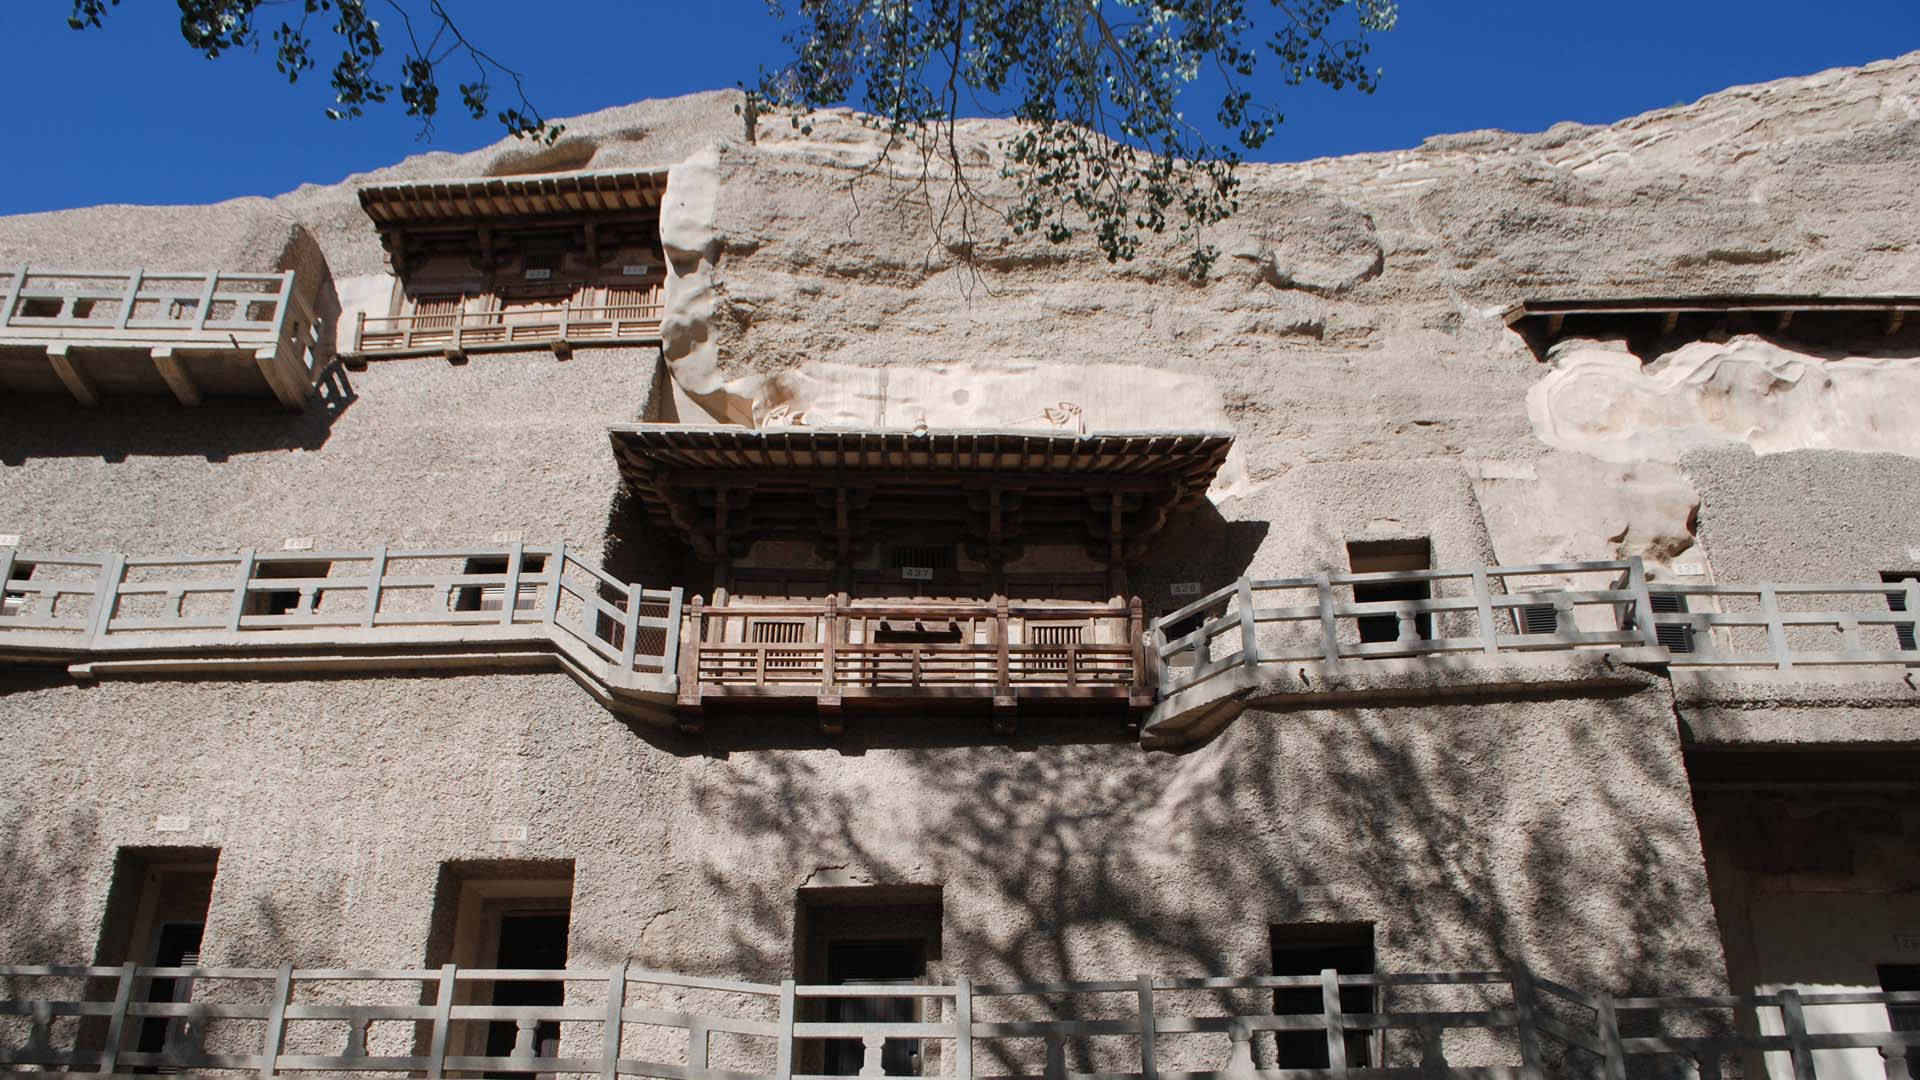 MOGAO CAVES, WESTERN WEI PERIOD, 6TH CENTURY (restored 1980)